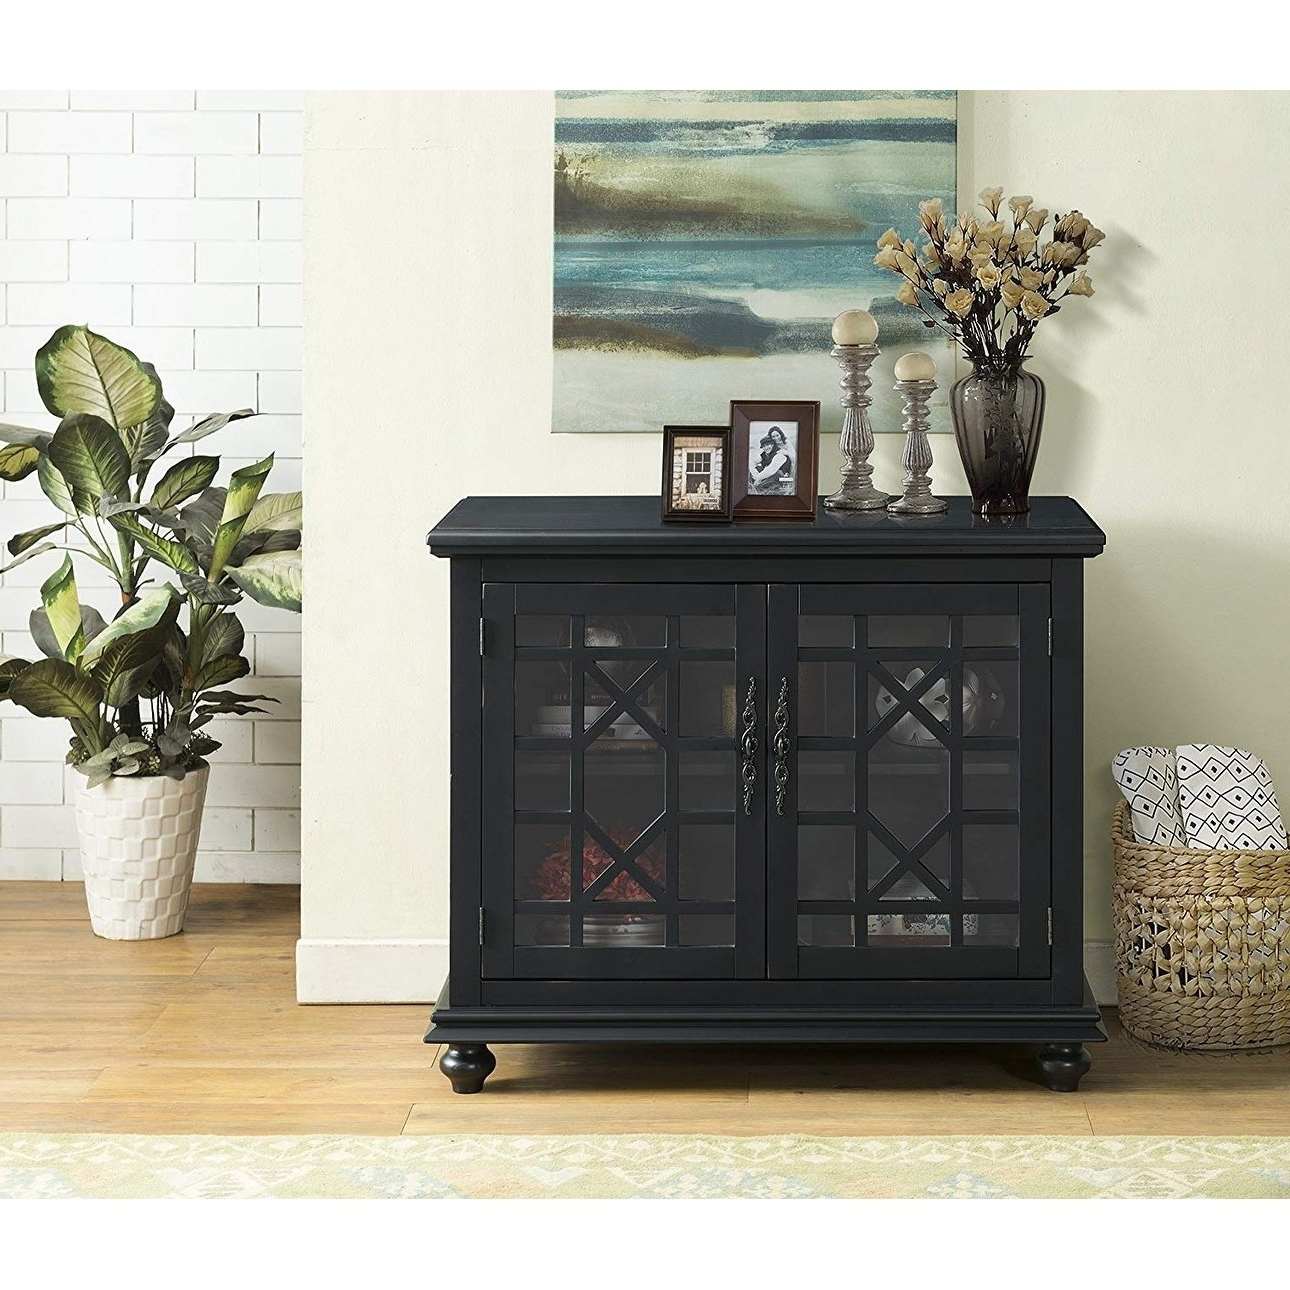 Shop Wooden Tv Stand With Trellis Detailed Doors, Antique Black Within Maddy 60 Inch Tv Stands (View 18 of 20)